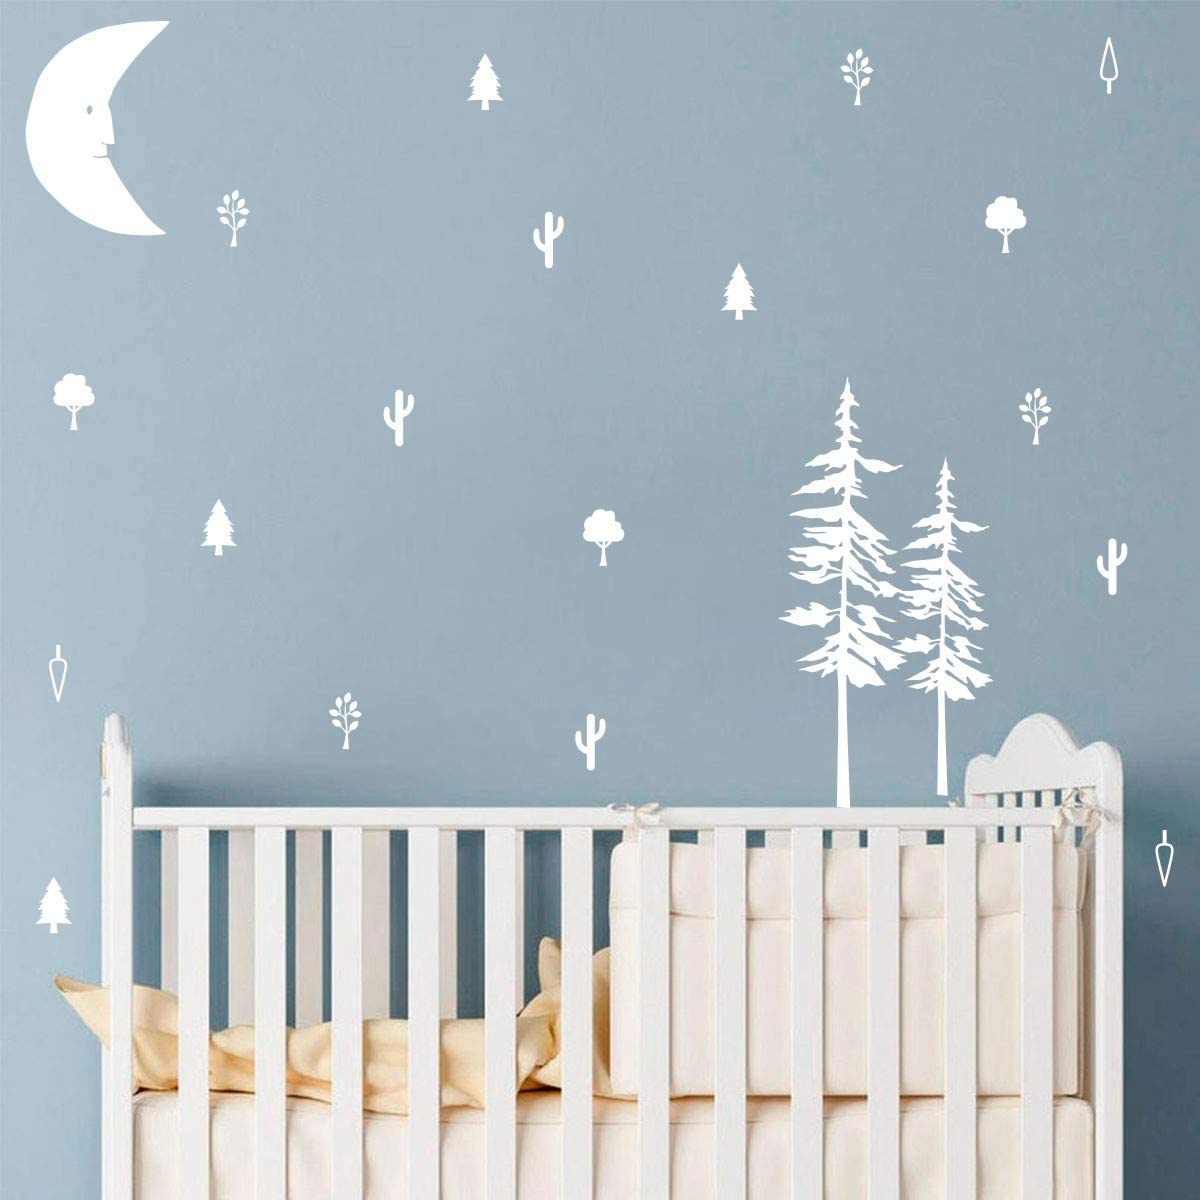 Makeyes Makeyes Moon Forest Wall Stickers Little Pine Trees Wall Decal Set Pattern Kids Bedroom Wall Decor Sleeping Room Vinyl Easy Peel Stick DIY Decoration MG004 (White)